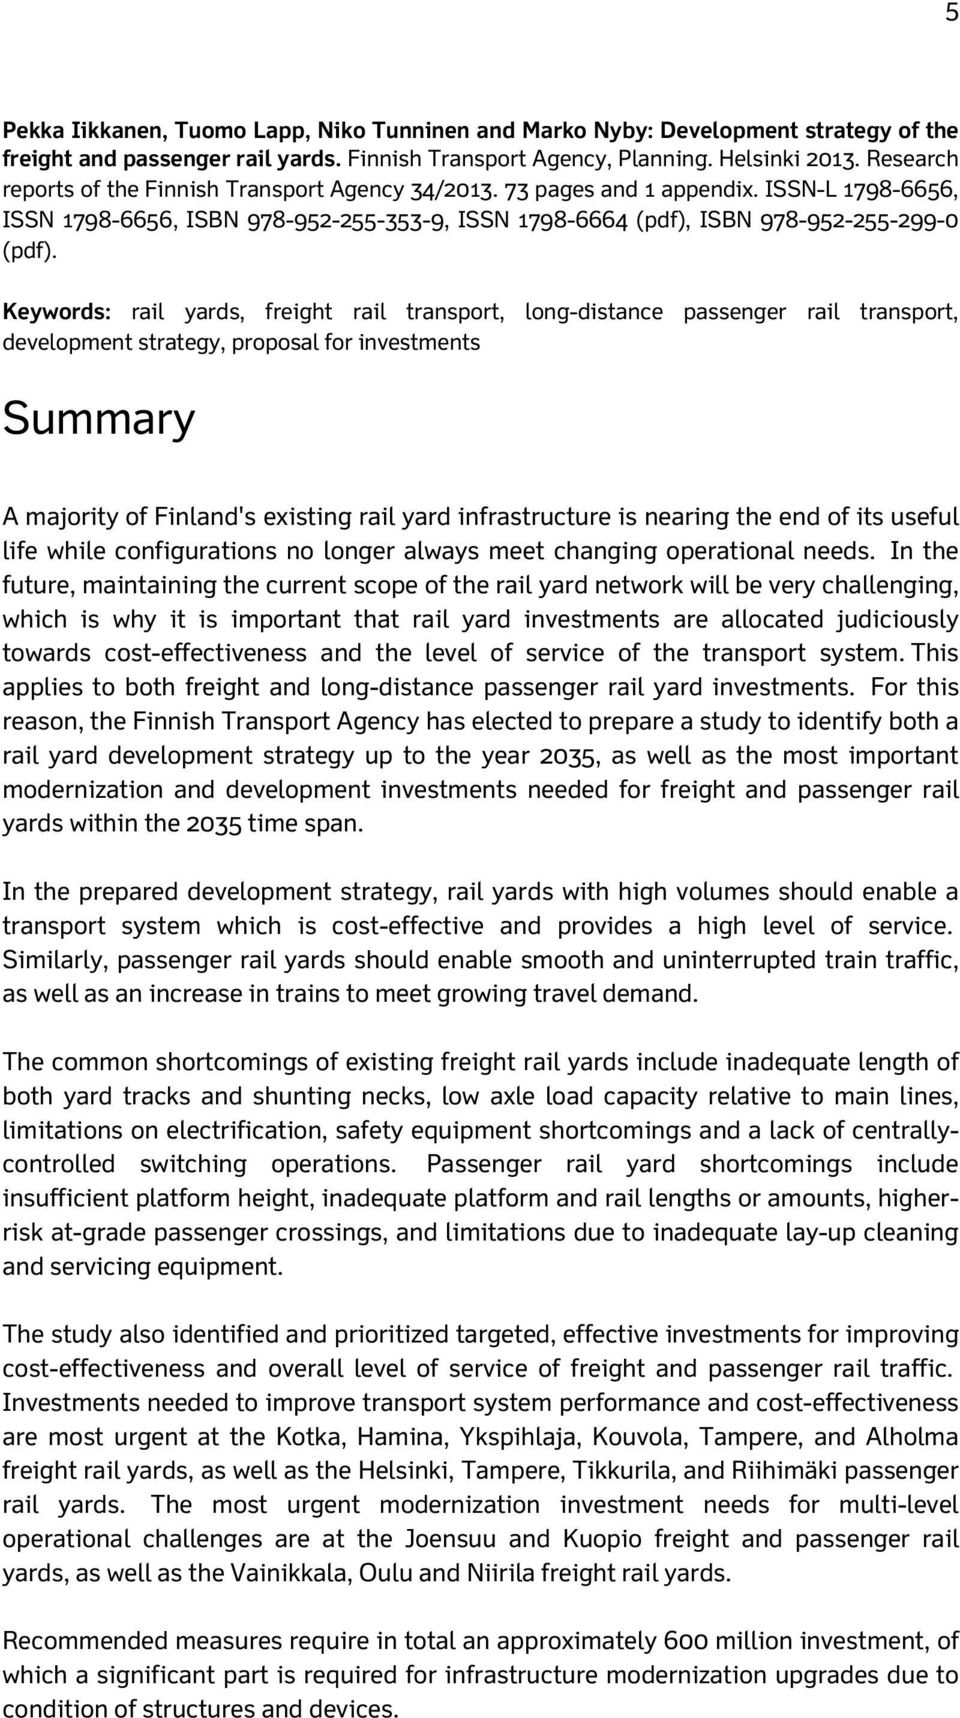 Keywords: rail yards, freight rail transport, long-distance passenger rail transport, development strategy, proposal for investments Summary A majority of Finland's existing rail yard infrastructure